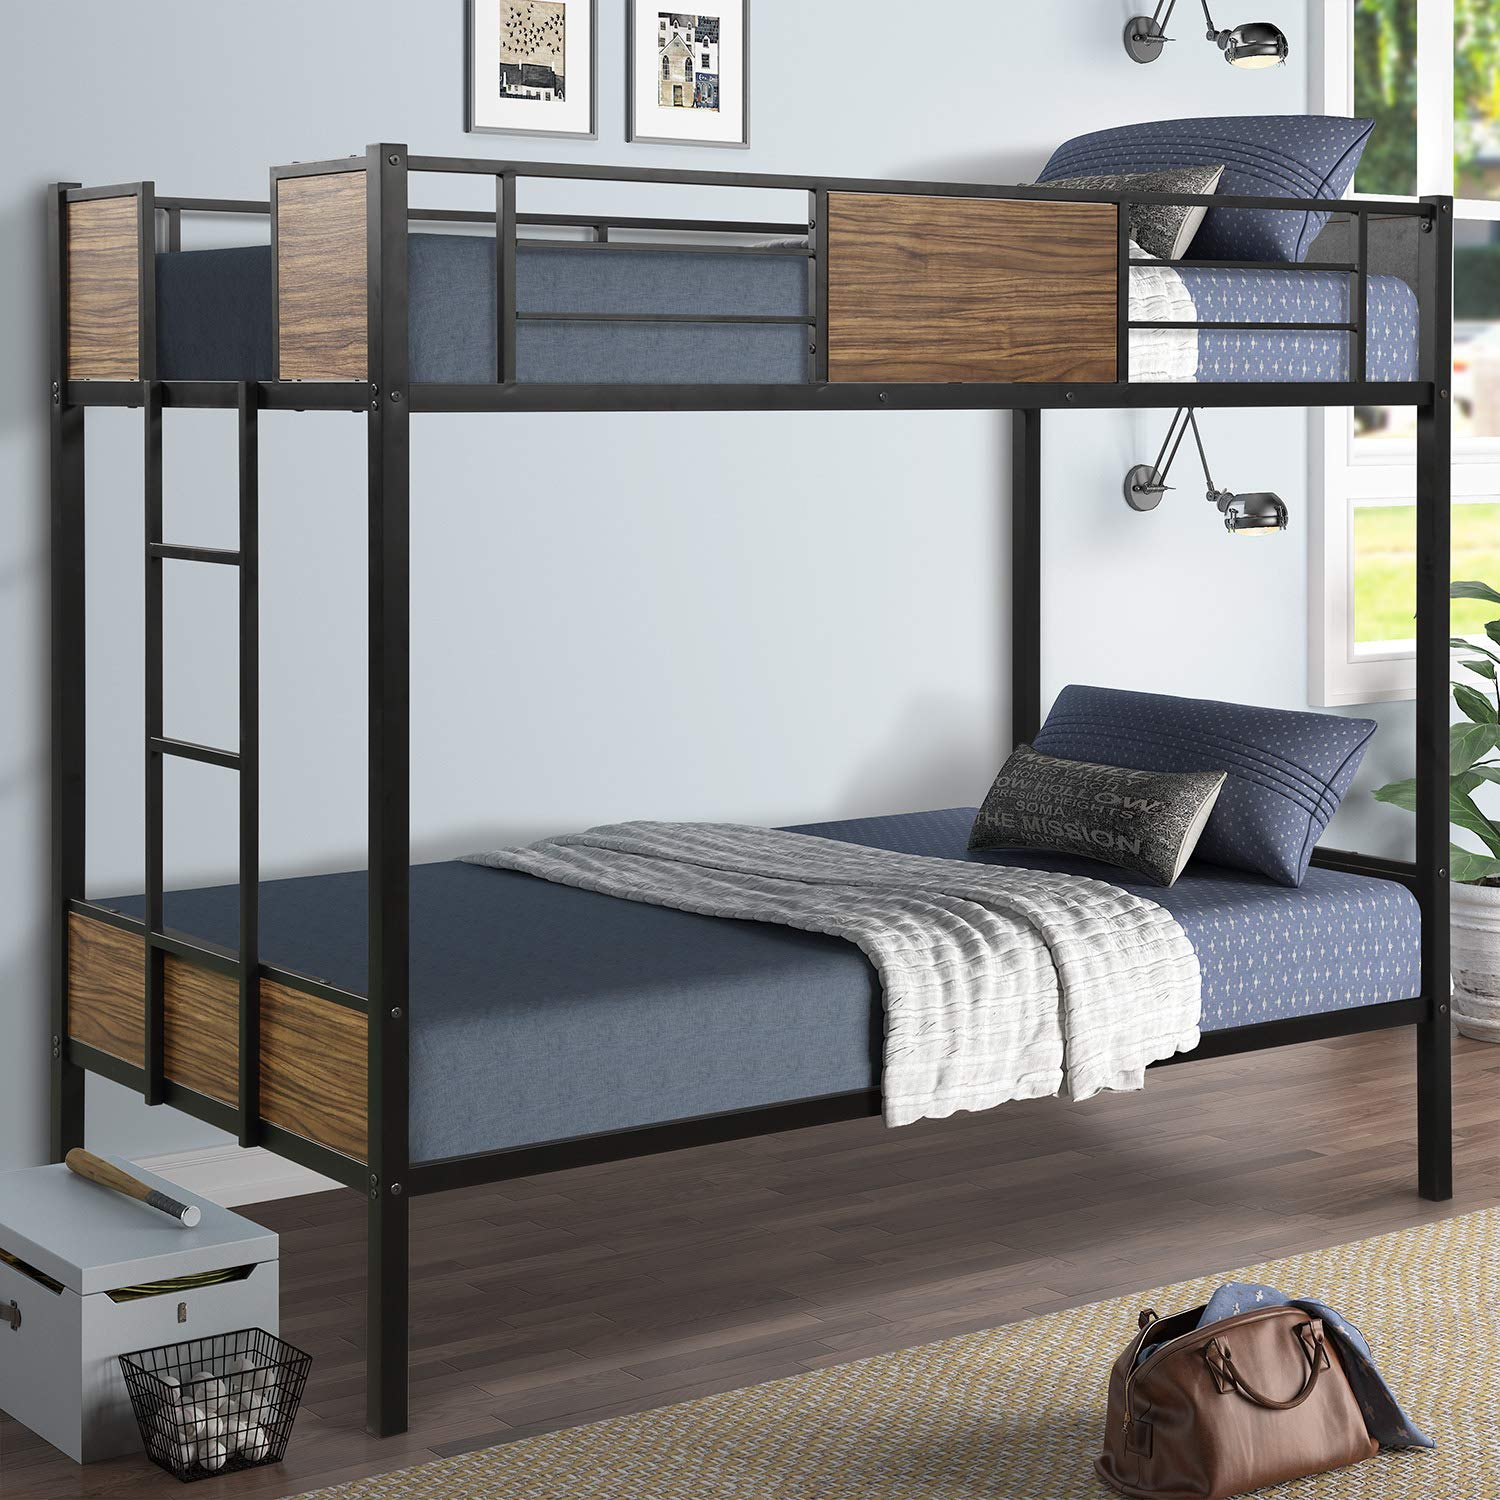 Twin Over Twin Bunk Bed Metal Frame Bunk Bed With Safety Rail Built In Ladder For Boys Girls Adults Bedroom Buy Online In Lithuania At Lithuania Desertcart Com Productid 170135318